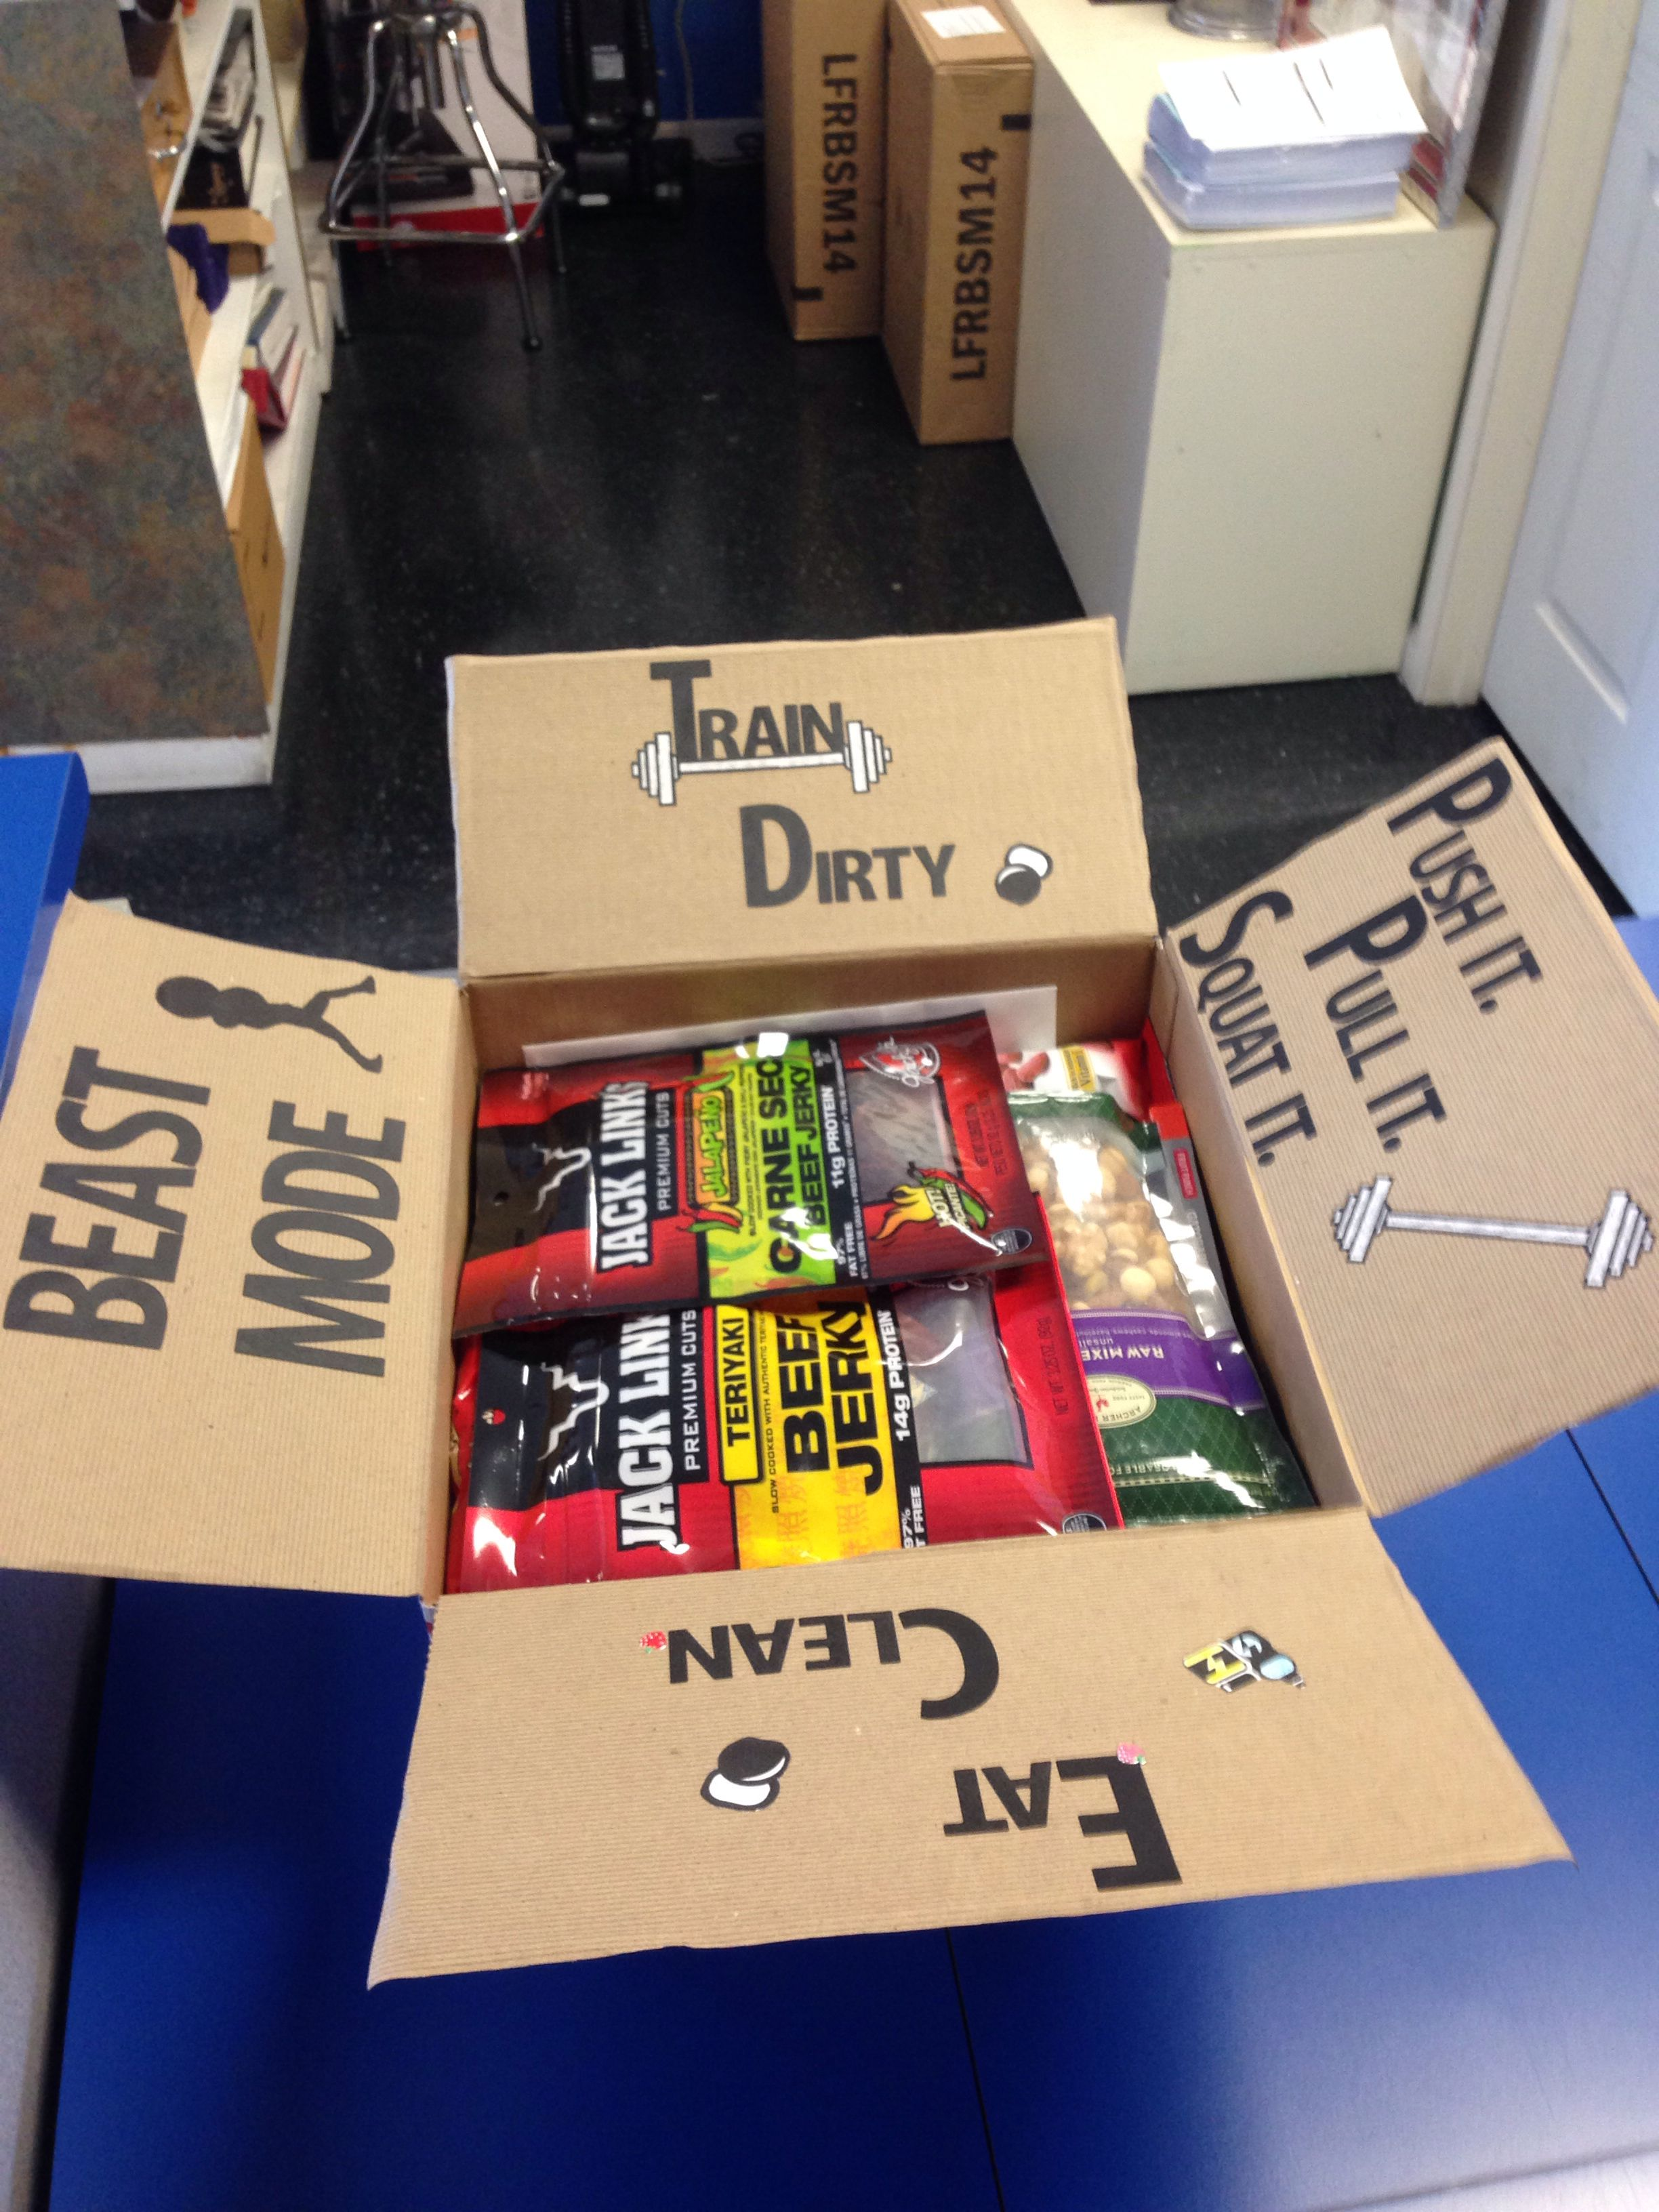 Workout care package to a friend. Healthy snacks, workout